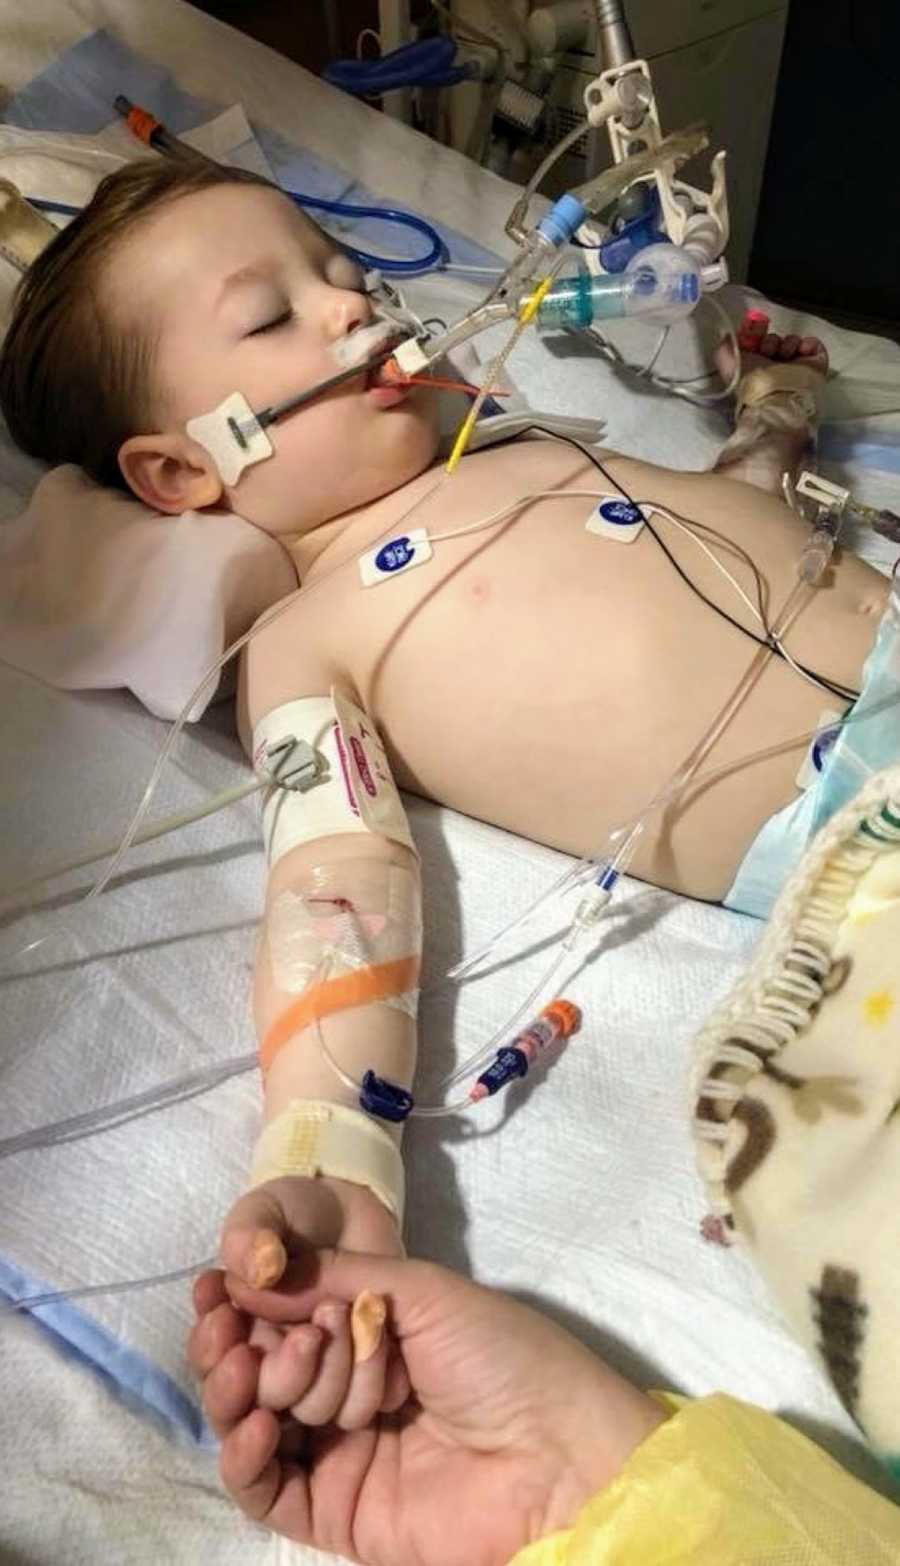 A two-year-old drowning victim hooked up to wires in hospital